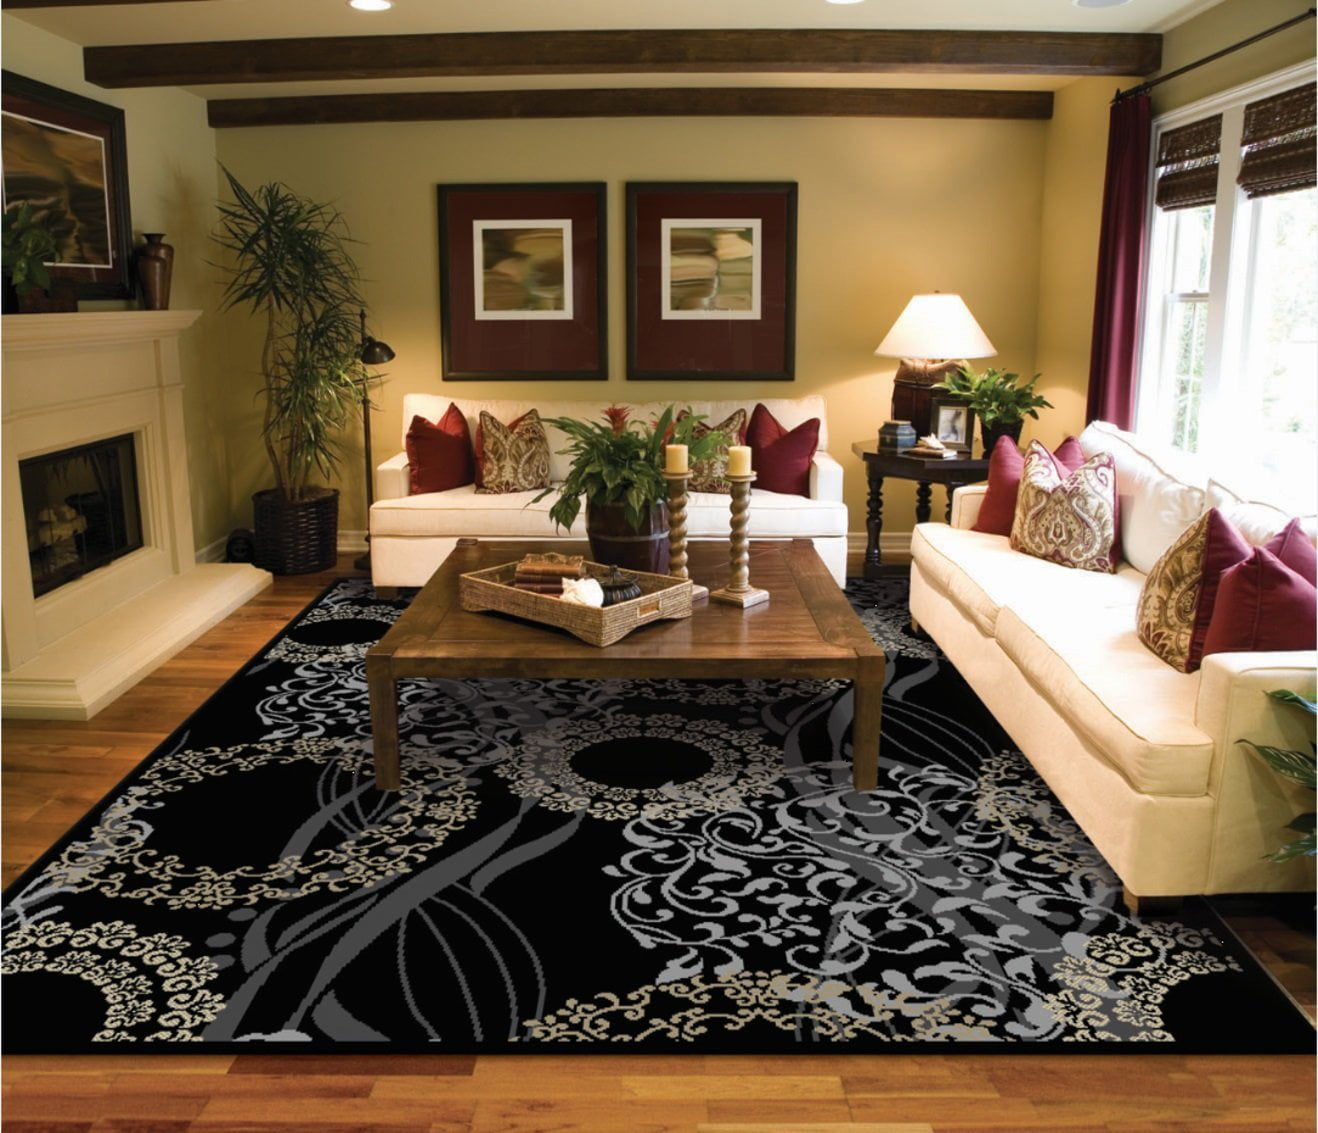 Contemporary Area Rugs 5x7 Area Rugs on Clearance 5 by 7 Rug for ...